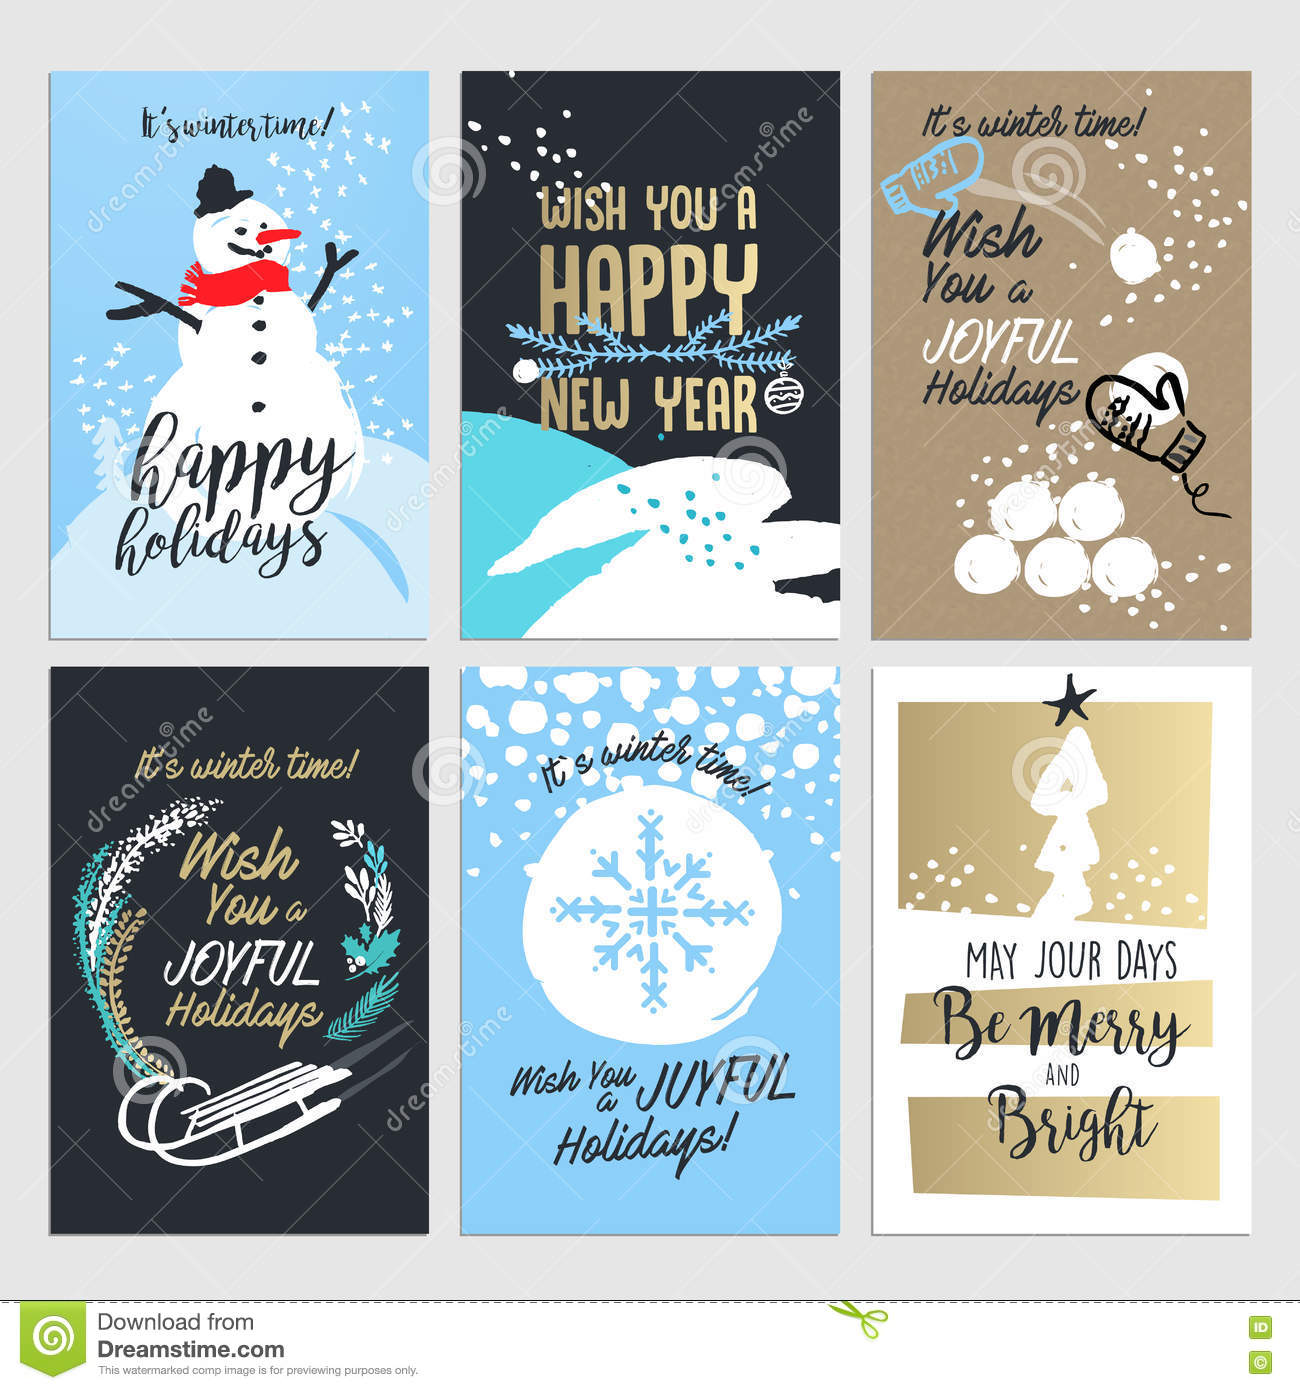 Christmas and new year greeting card concepts stock vector christmas and new year greeting card concepts m4hsunfo